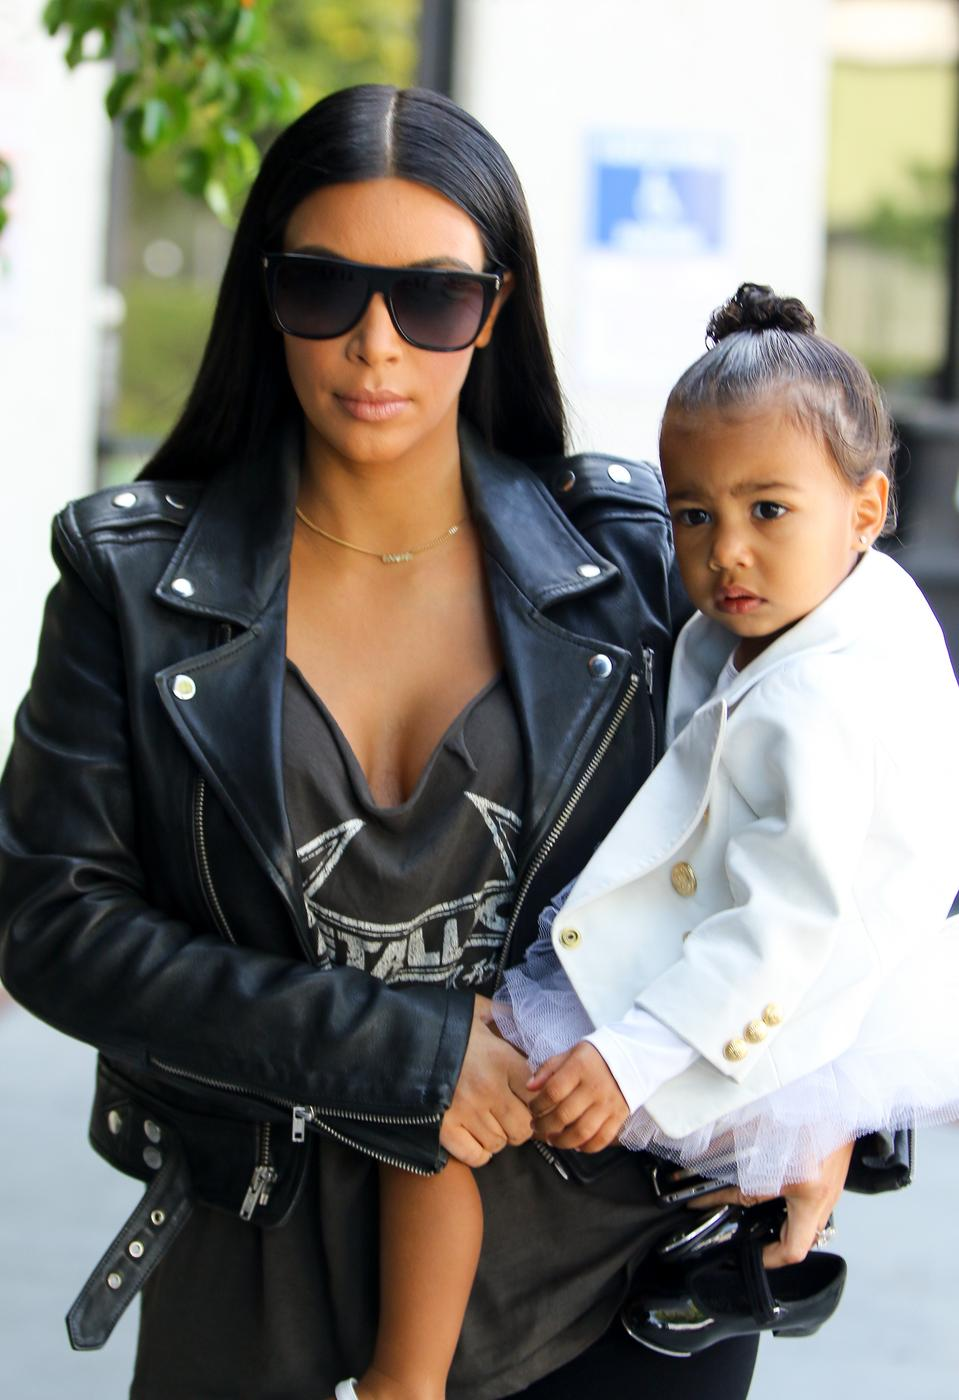 Kim Kardashian North West Celebrity Sightings In Los Angeles - May 28, 2015 Bauer-Griffin/GC Images